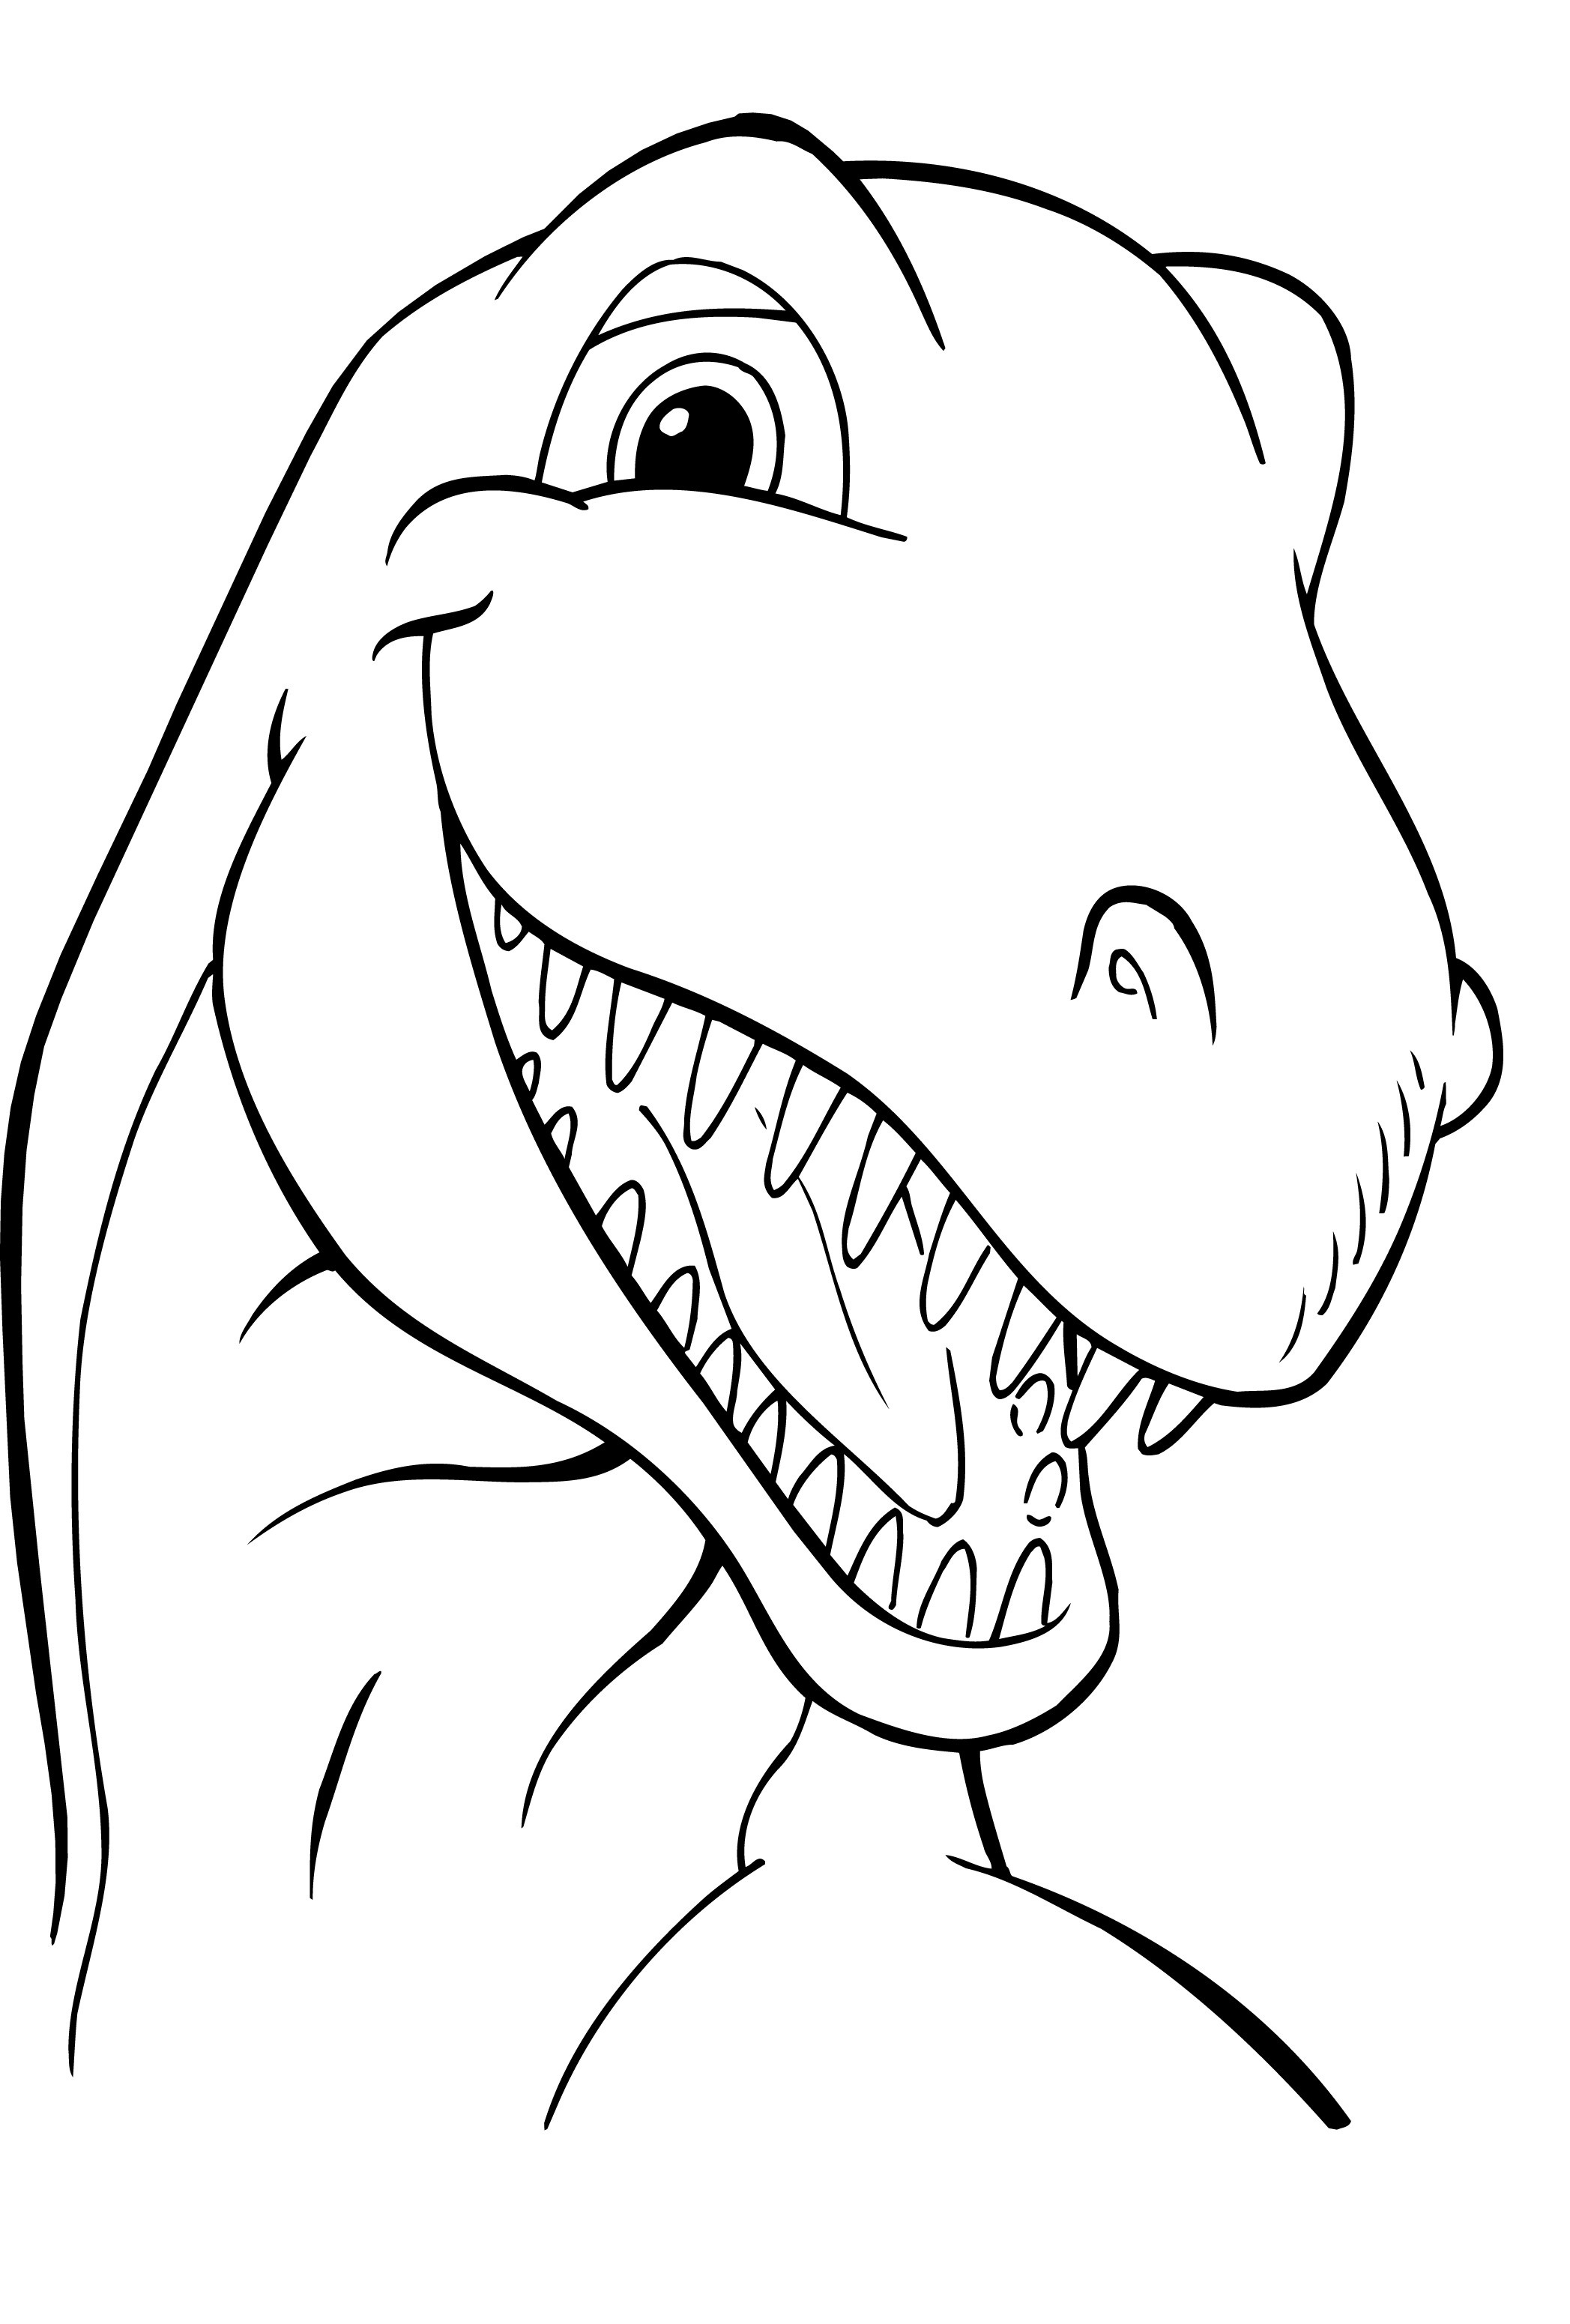 Free Printable Dinosaur Coloring Pages For Kids Coloring Pages Printable For Free